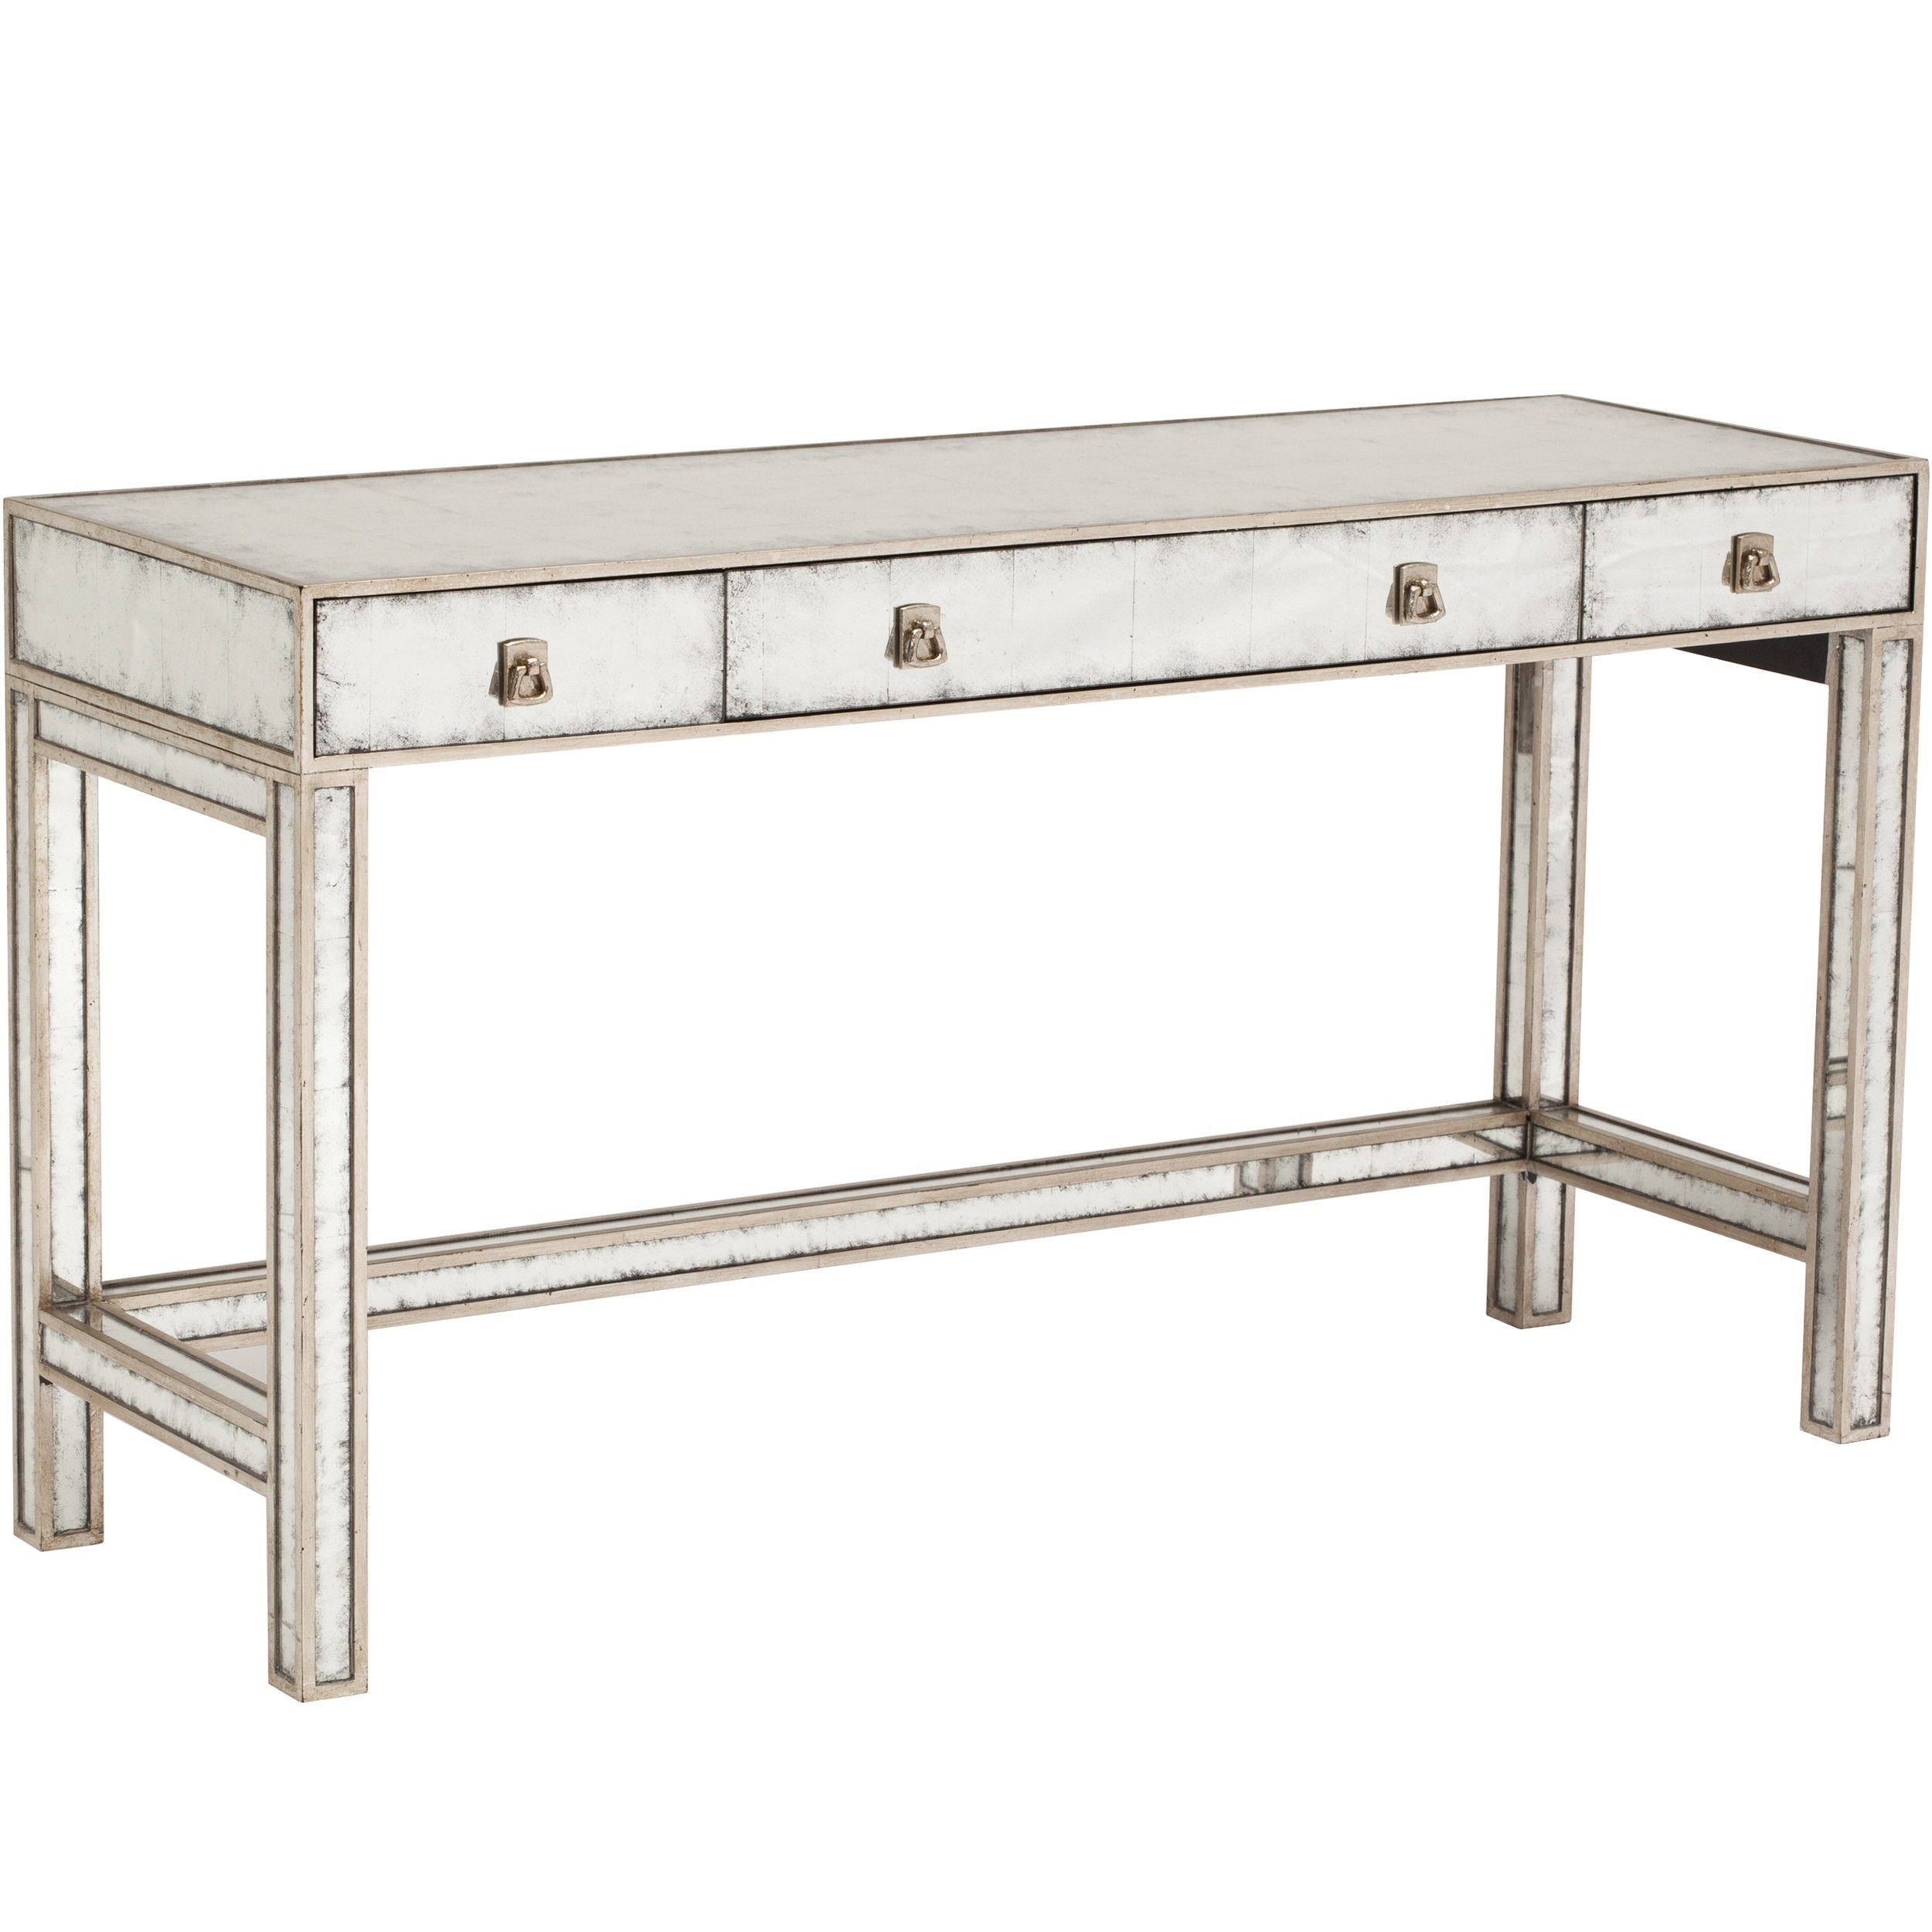 eglomise mirrored vanity table console tables accent furniture modern brass lamp pedestal nite stands ott coffee small designs wood chromebook tray pottery barn mercury glass